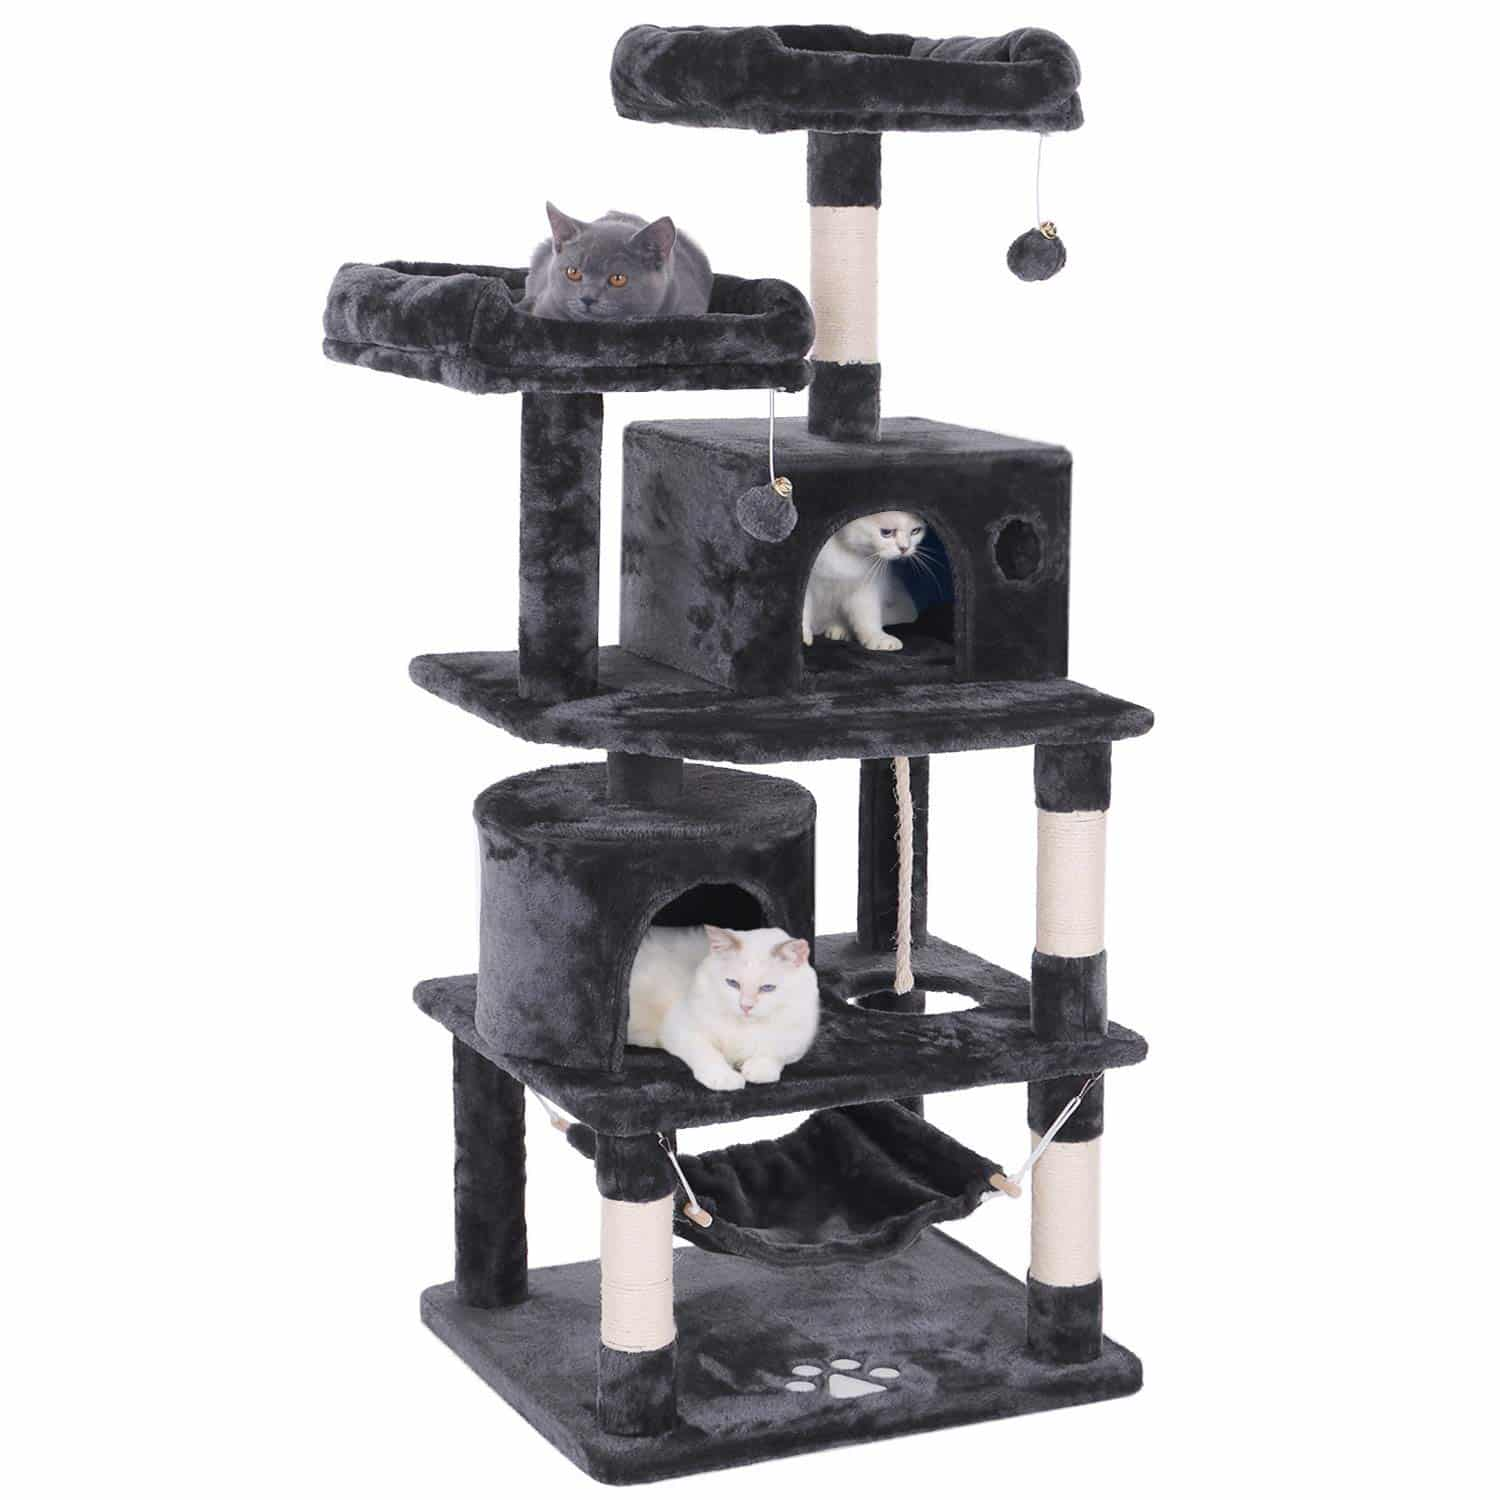 11. BEWISHOME Cat Tree Condo Furniture